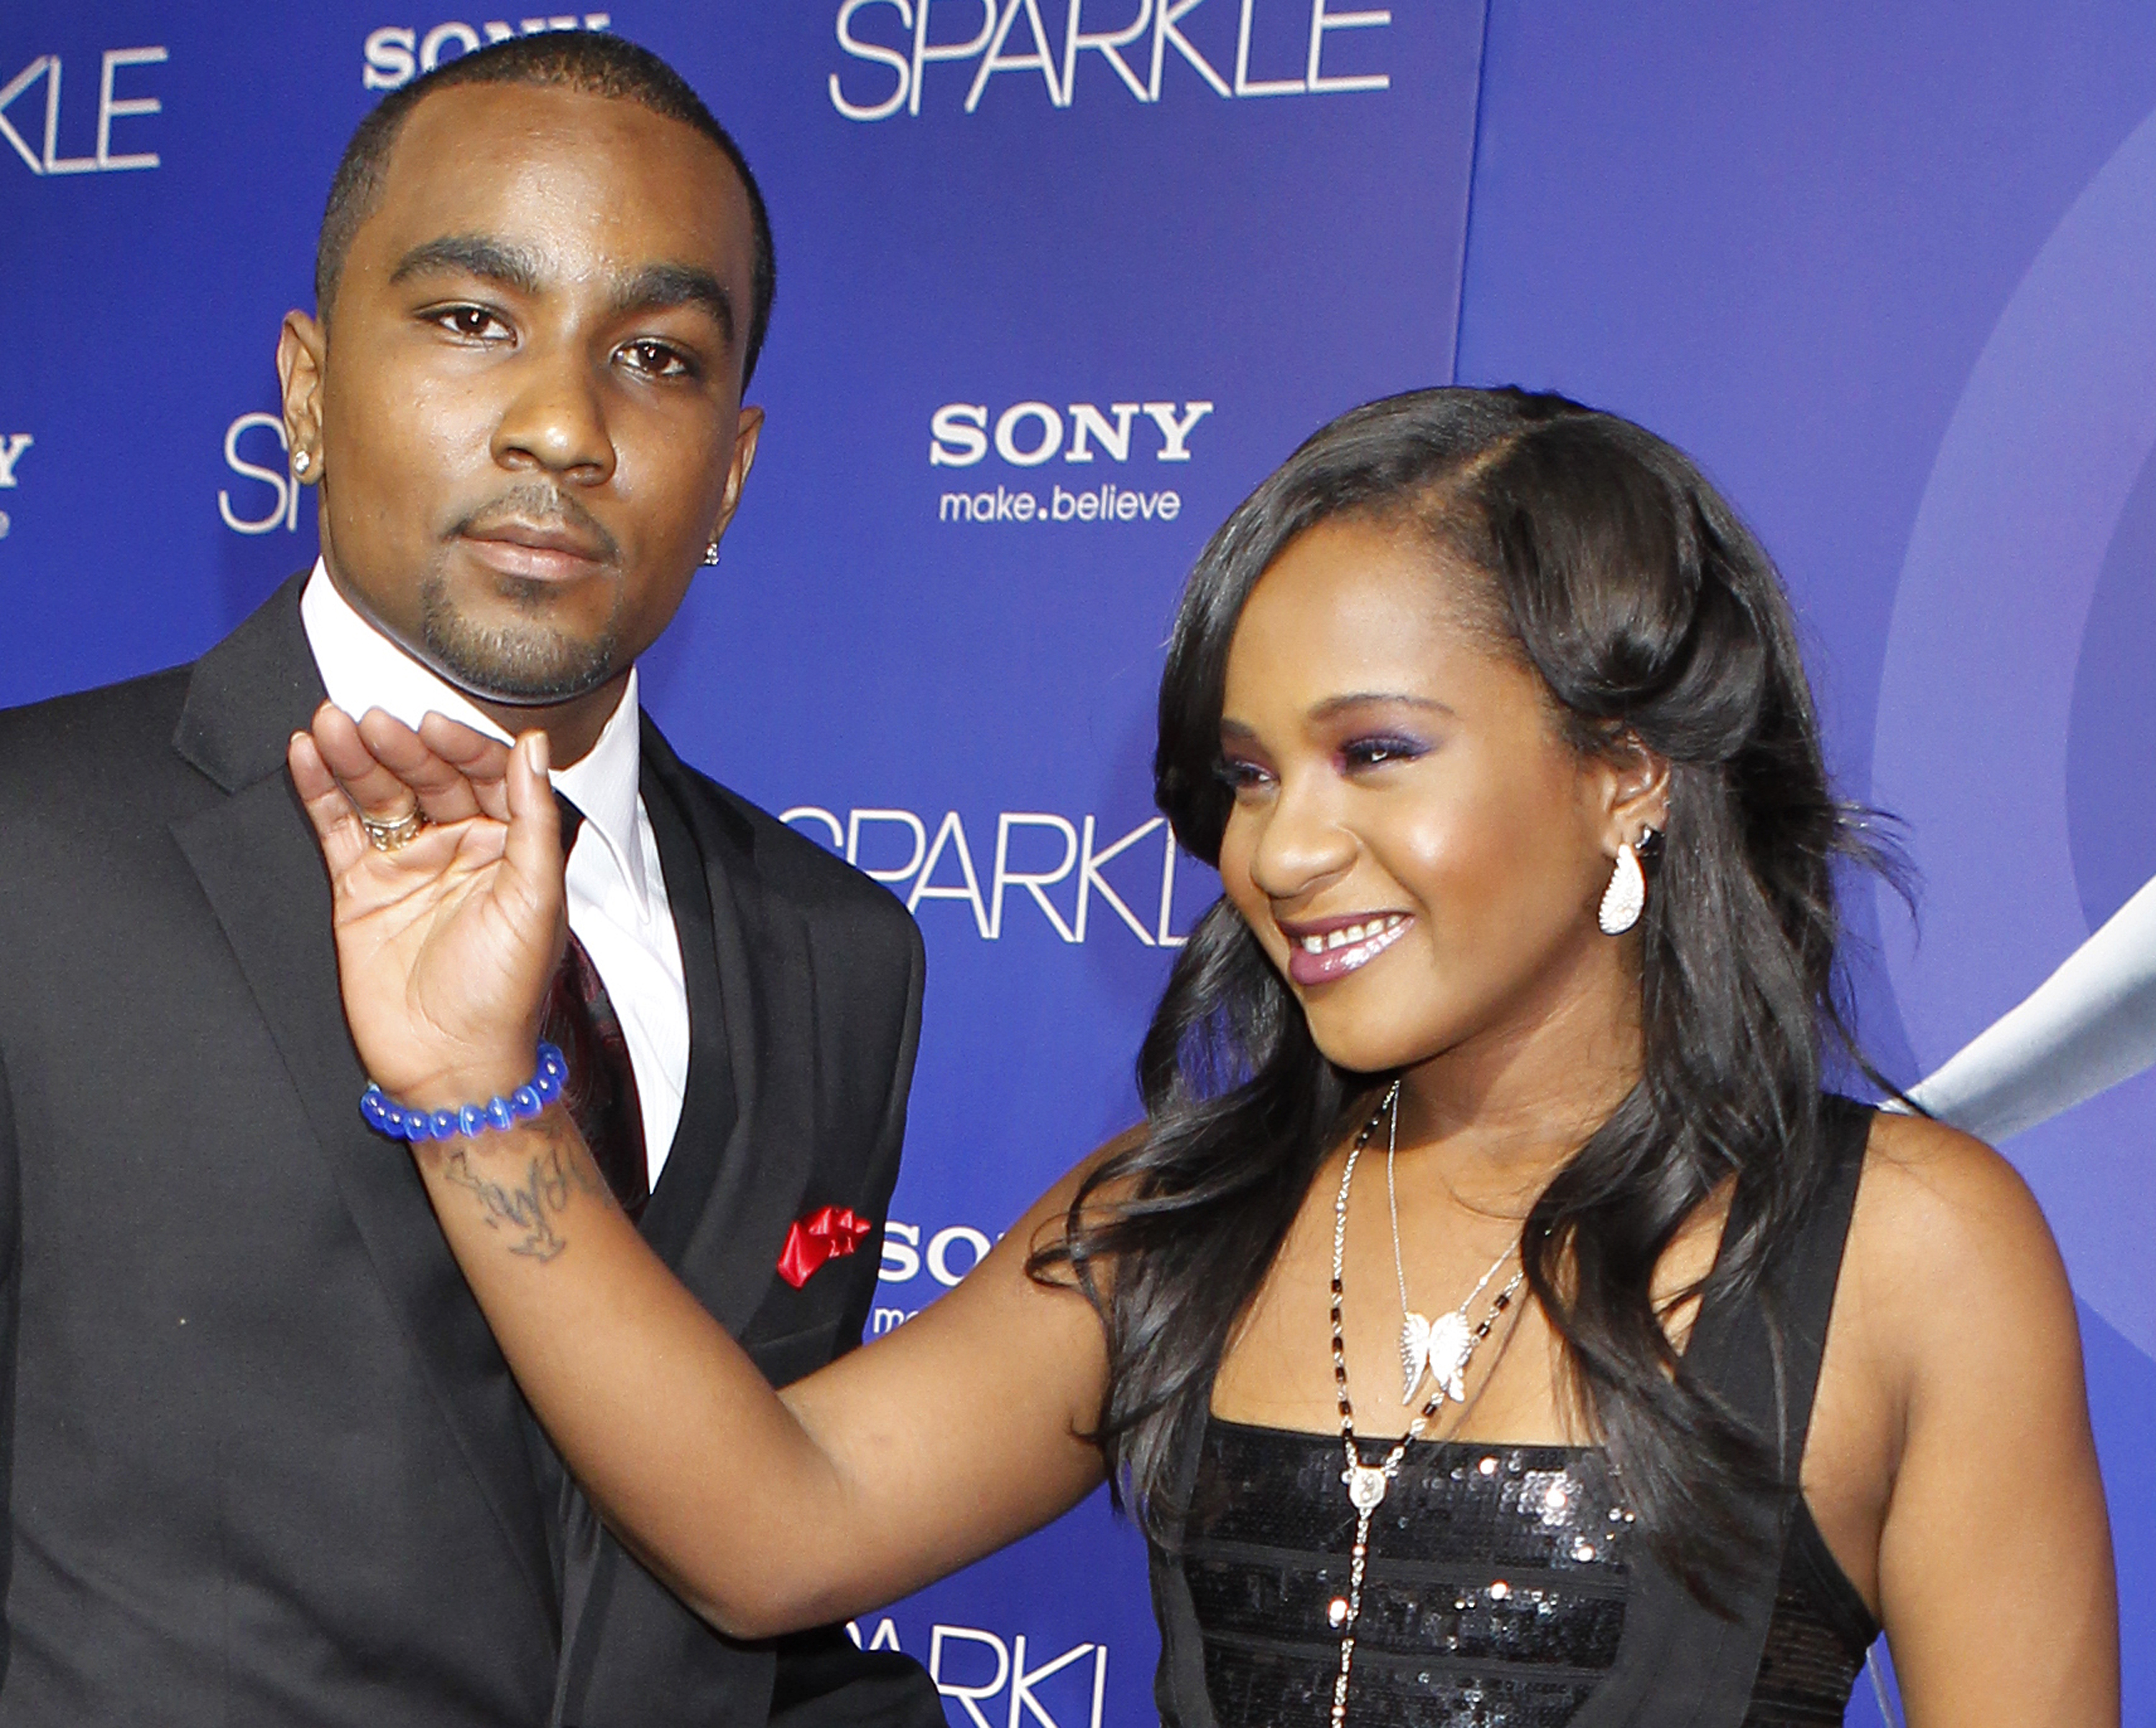 Bobbi Kristina Brown, daughter of the late singer Whitney Houston, arrives with boyfriend Nick Gordon at the premiere of the new film Sparkle in Hollywood on Aug. 16, 2012